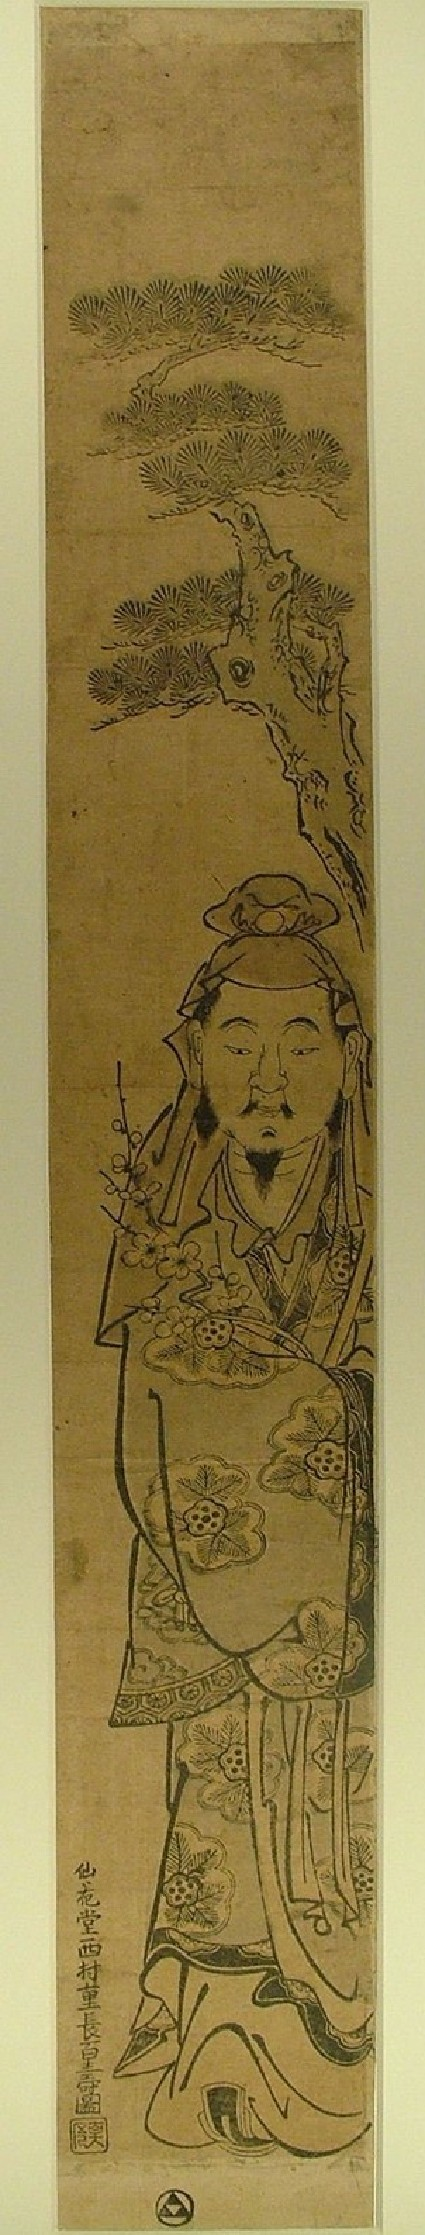 Sugawara-no-Michizane under a pine tree holding a branch of plum blossom